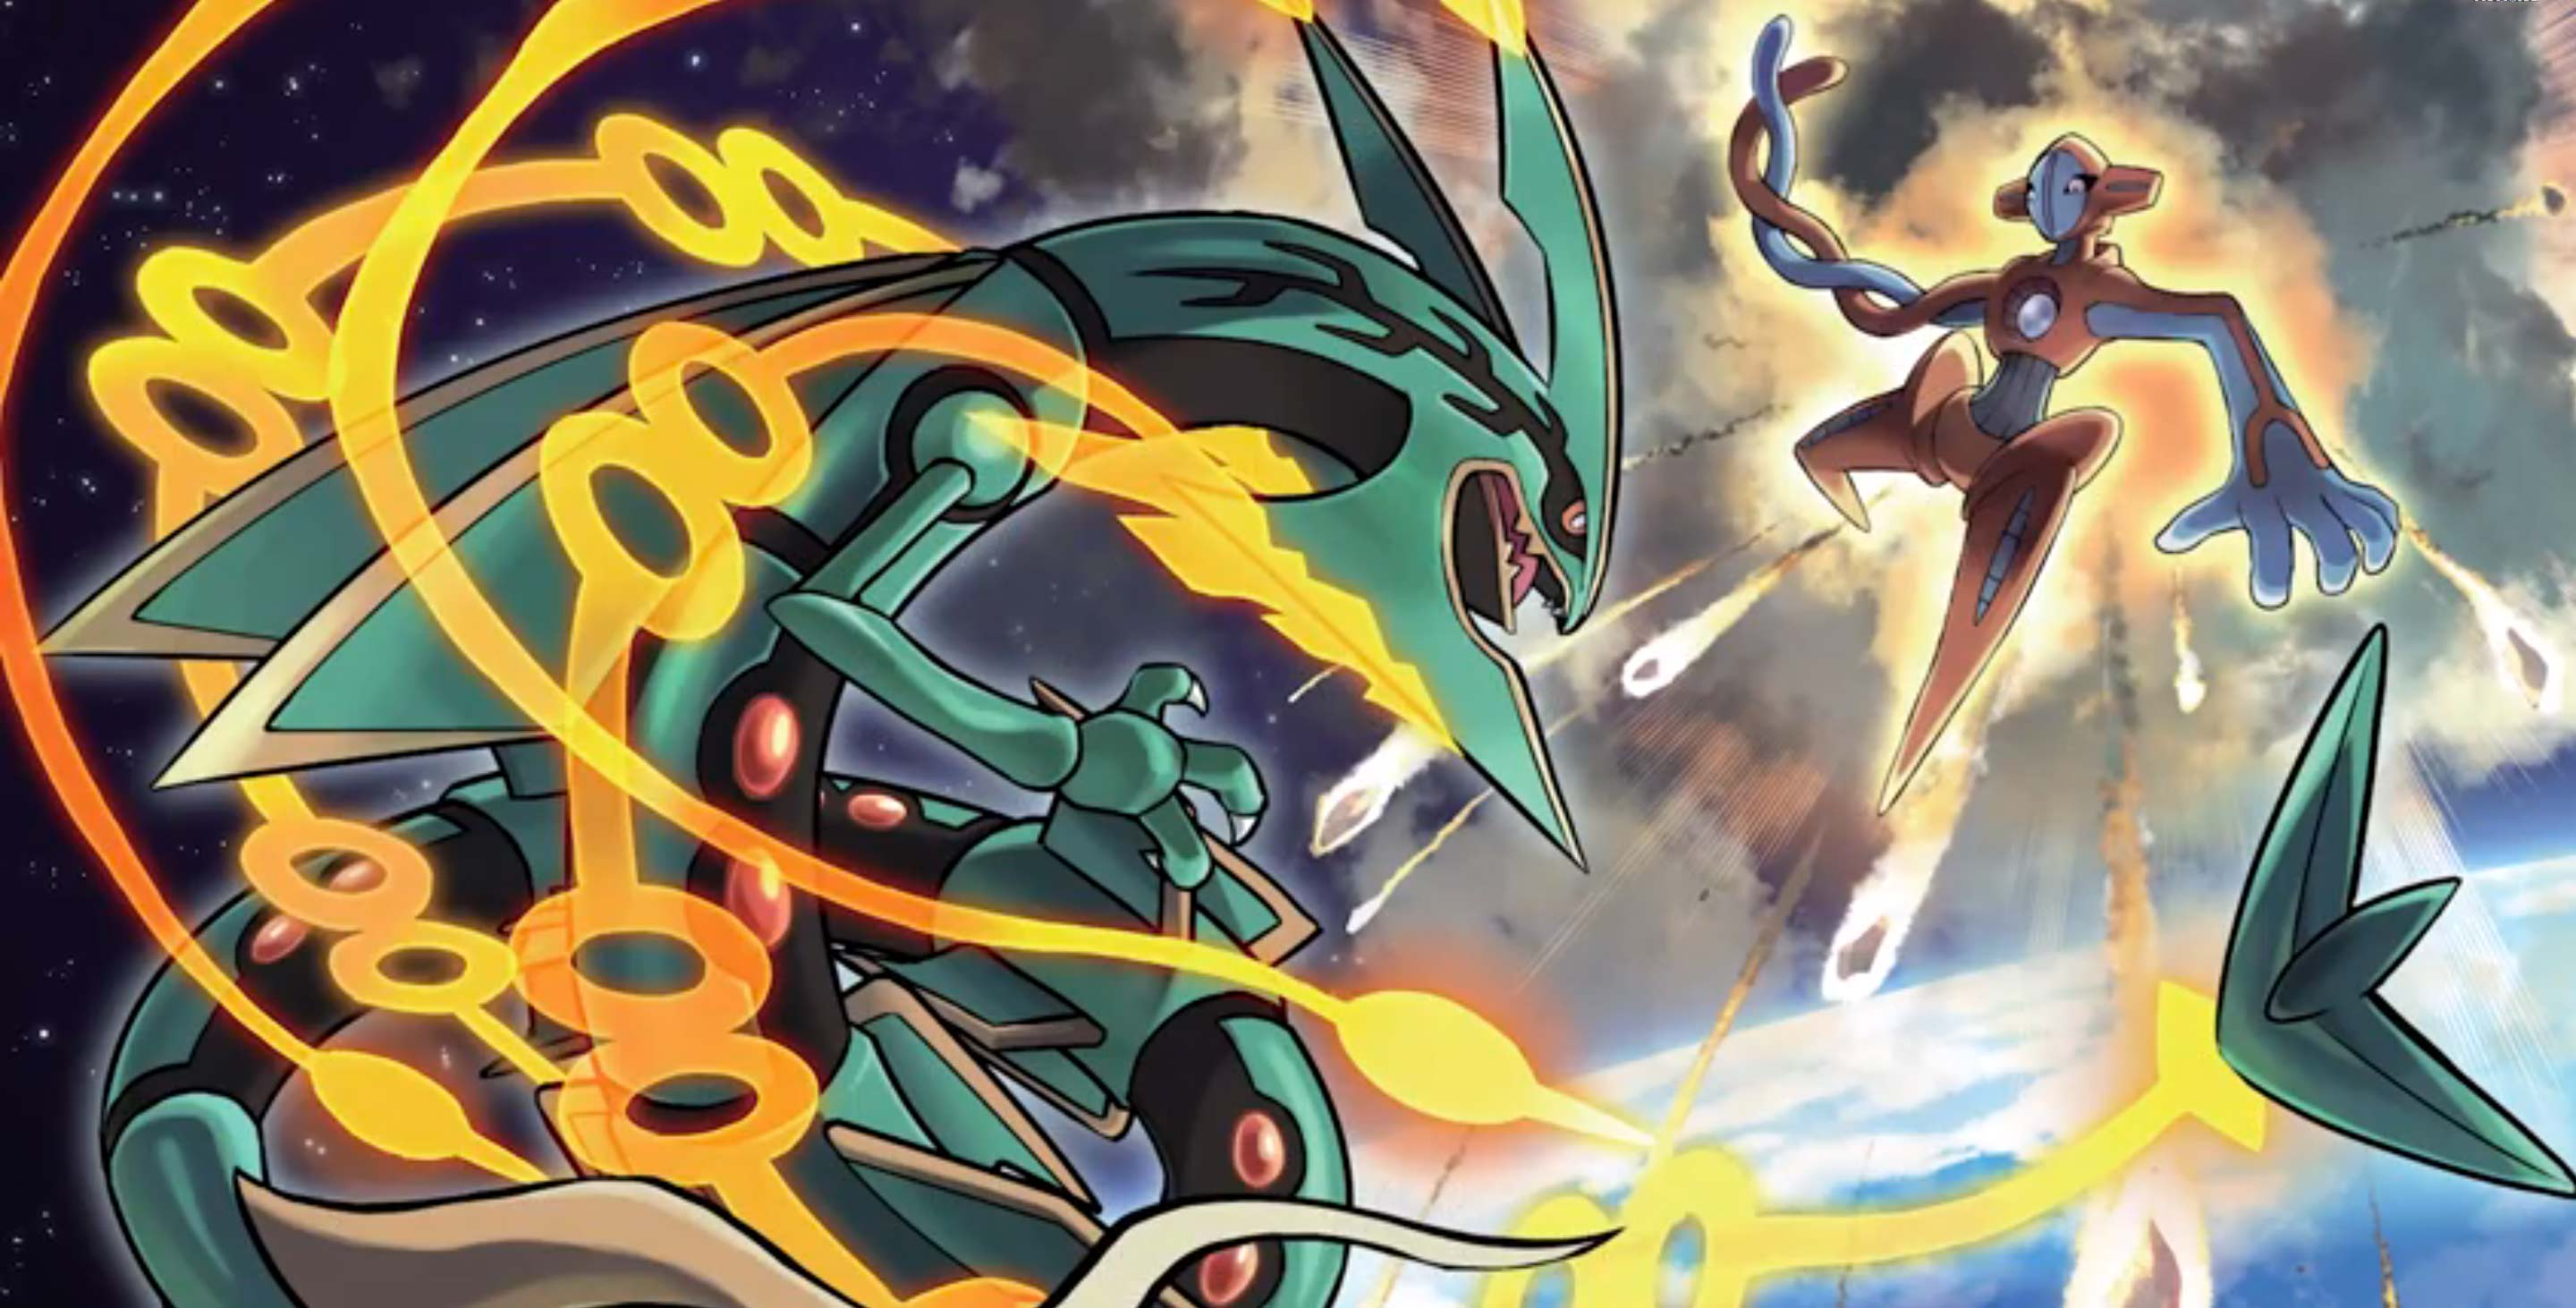 Pokémon Go story quests and Deoxys